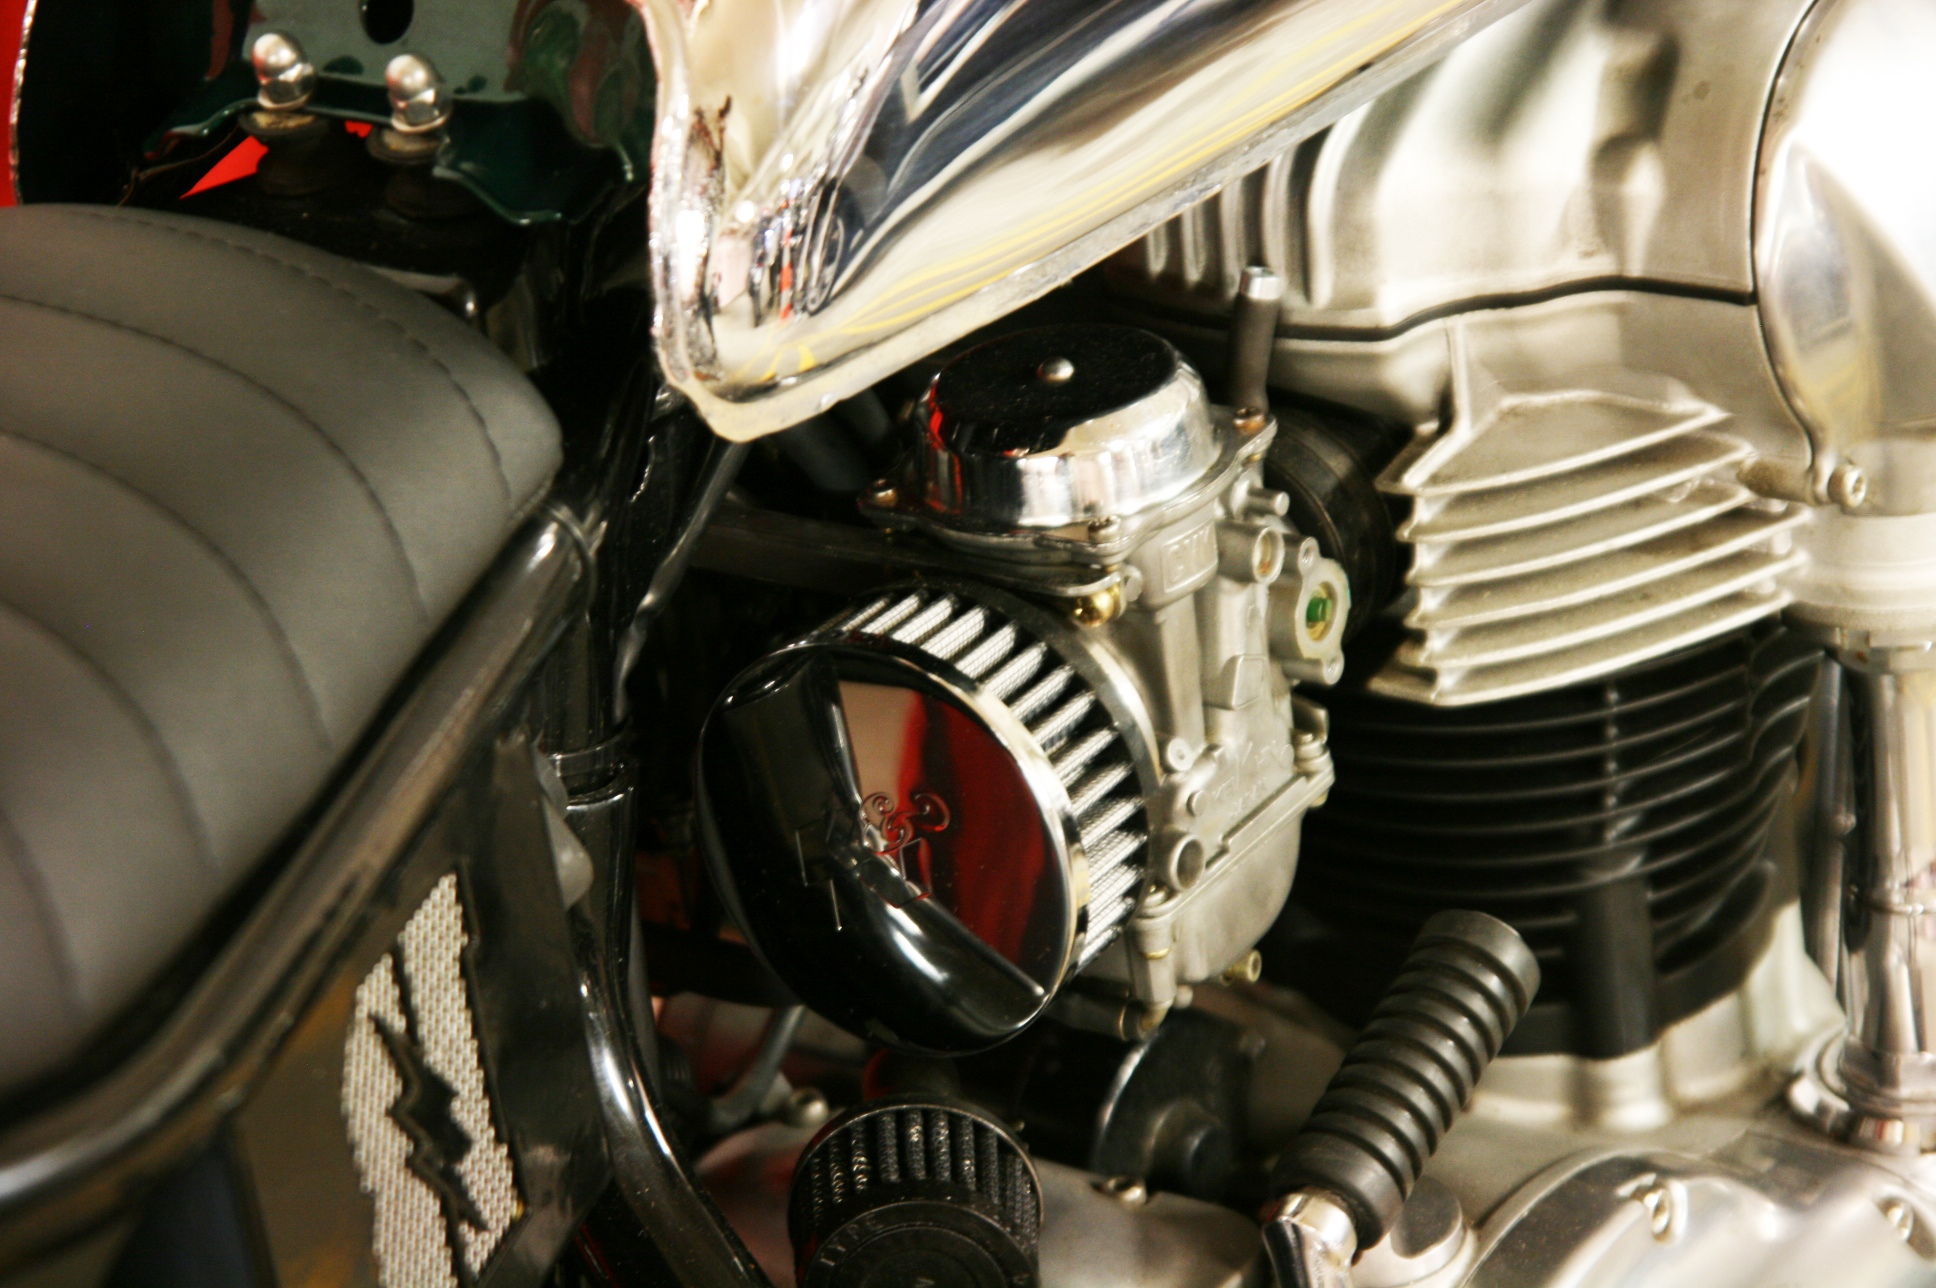 -  K&N  air filters mounted on the  Keihin  carburetors;  - re-jetted carburetors to match with the newly mounted air filters.